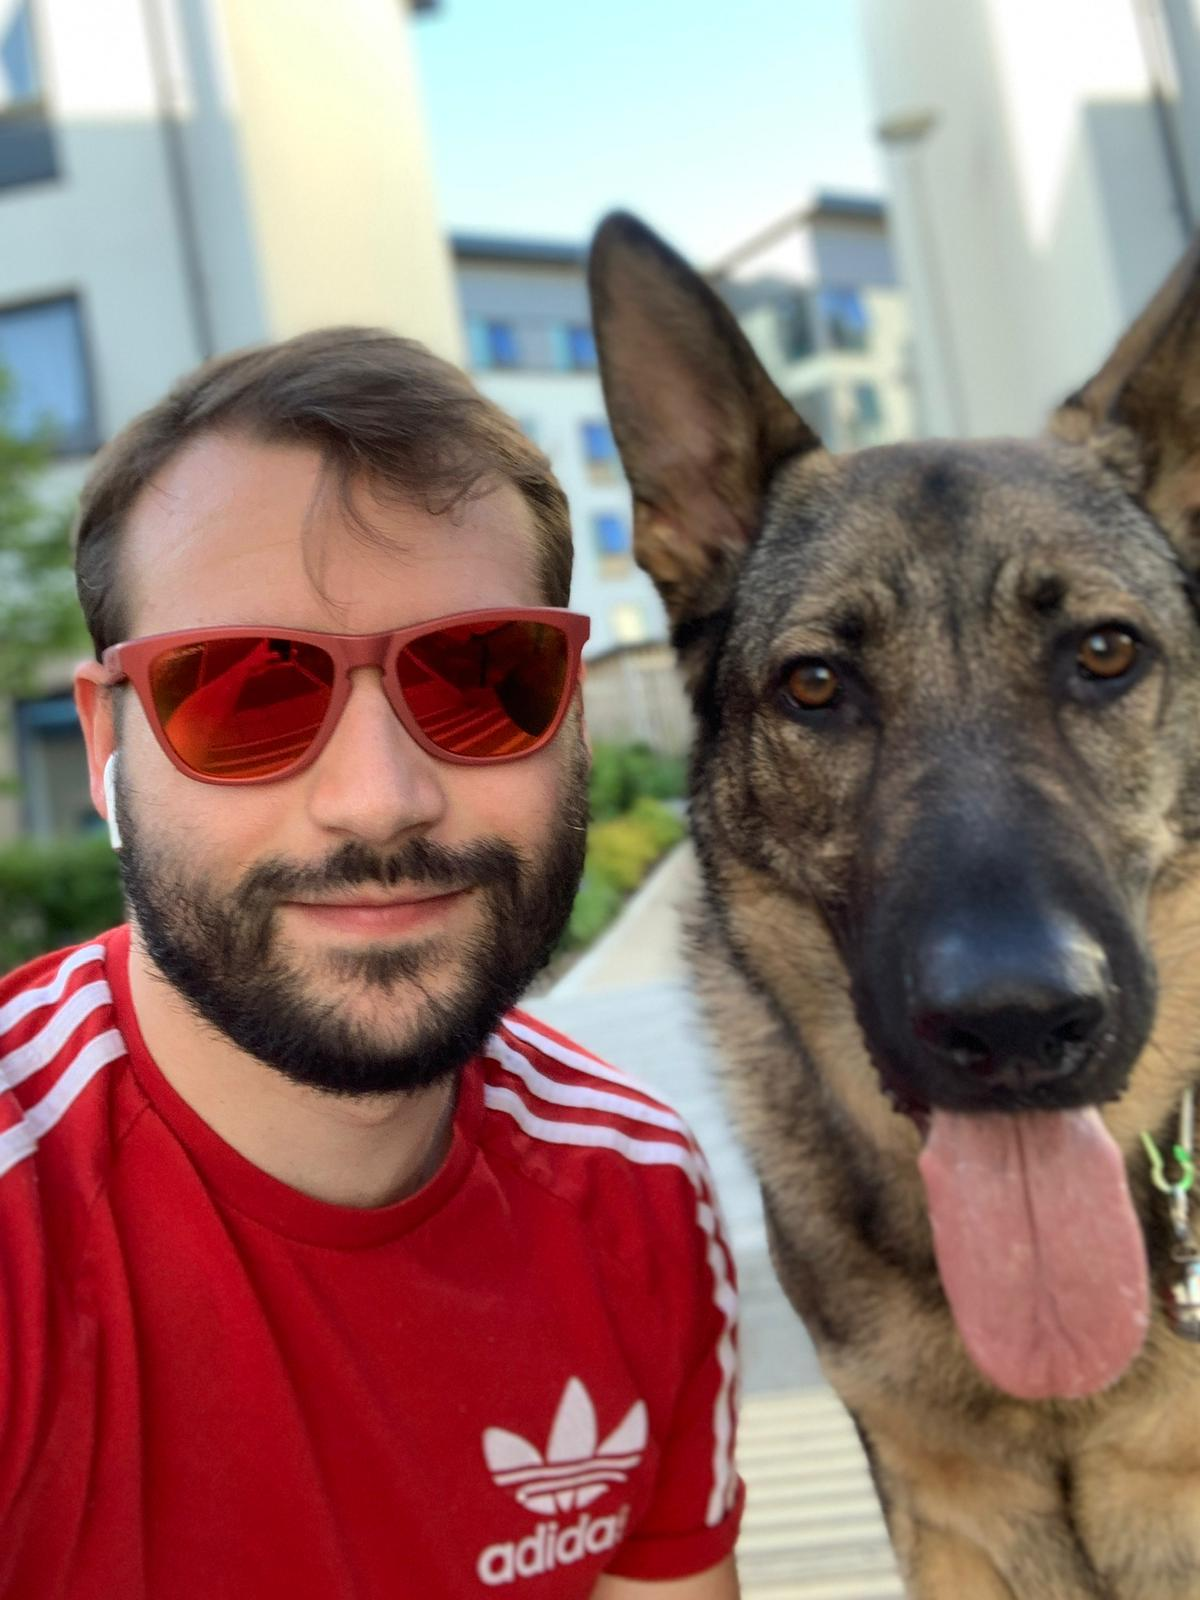 Image shows Dave Butler smiling at the camera with his guide dog, Alex